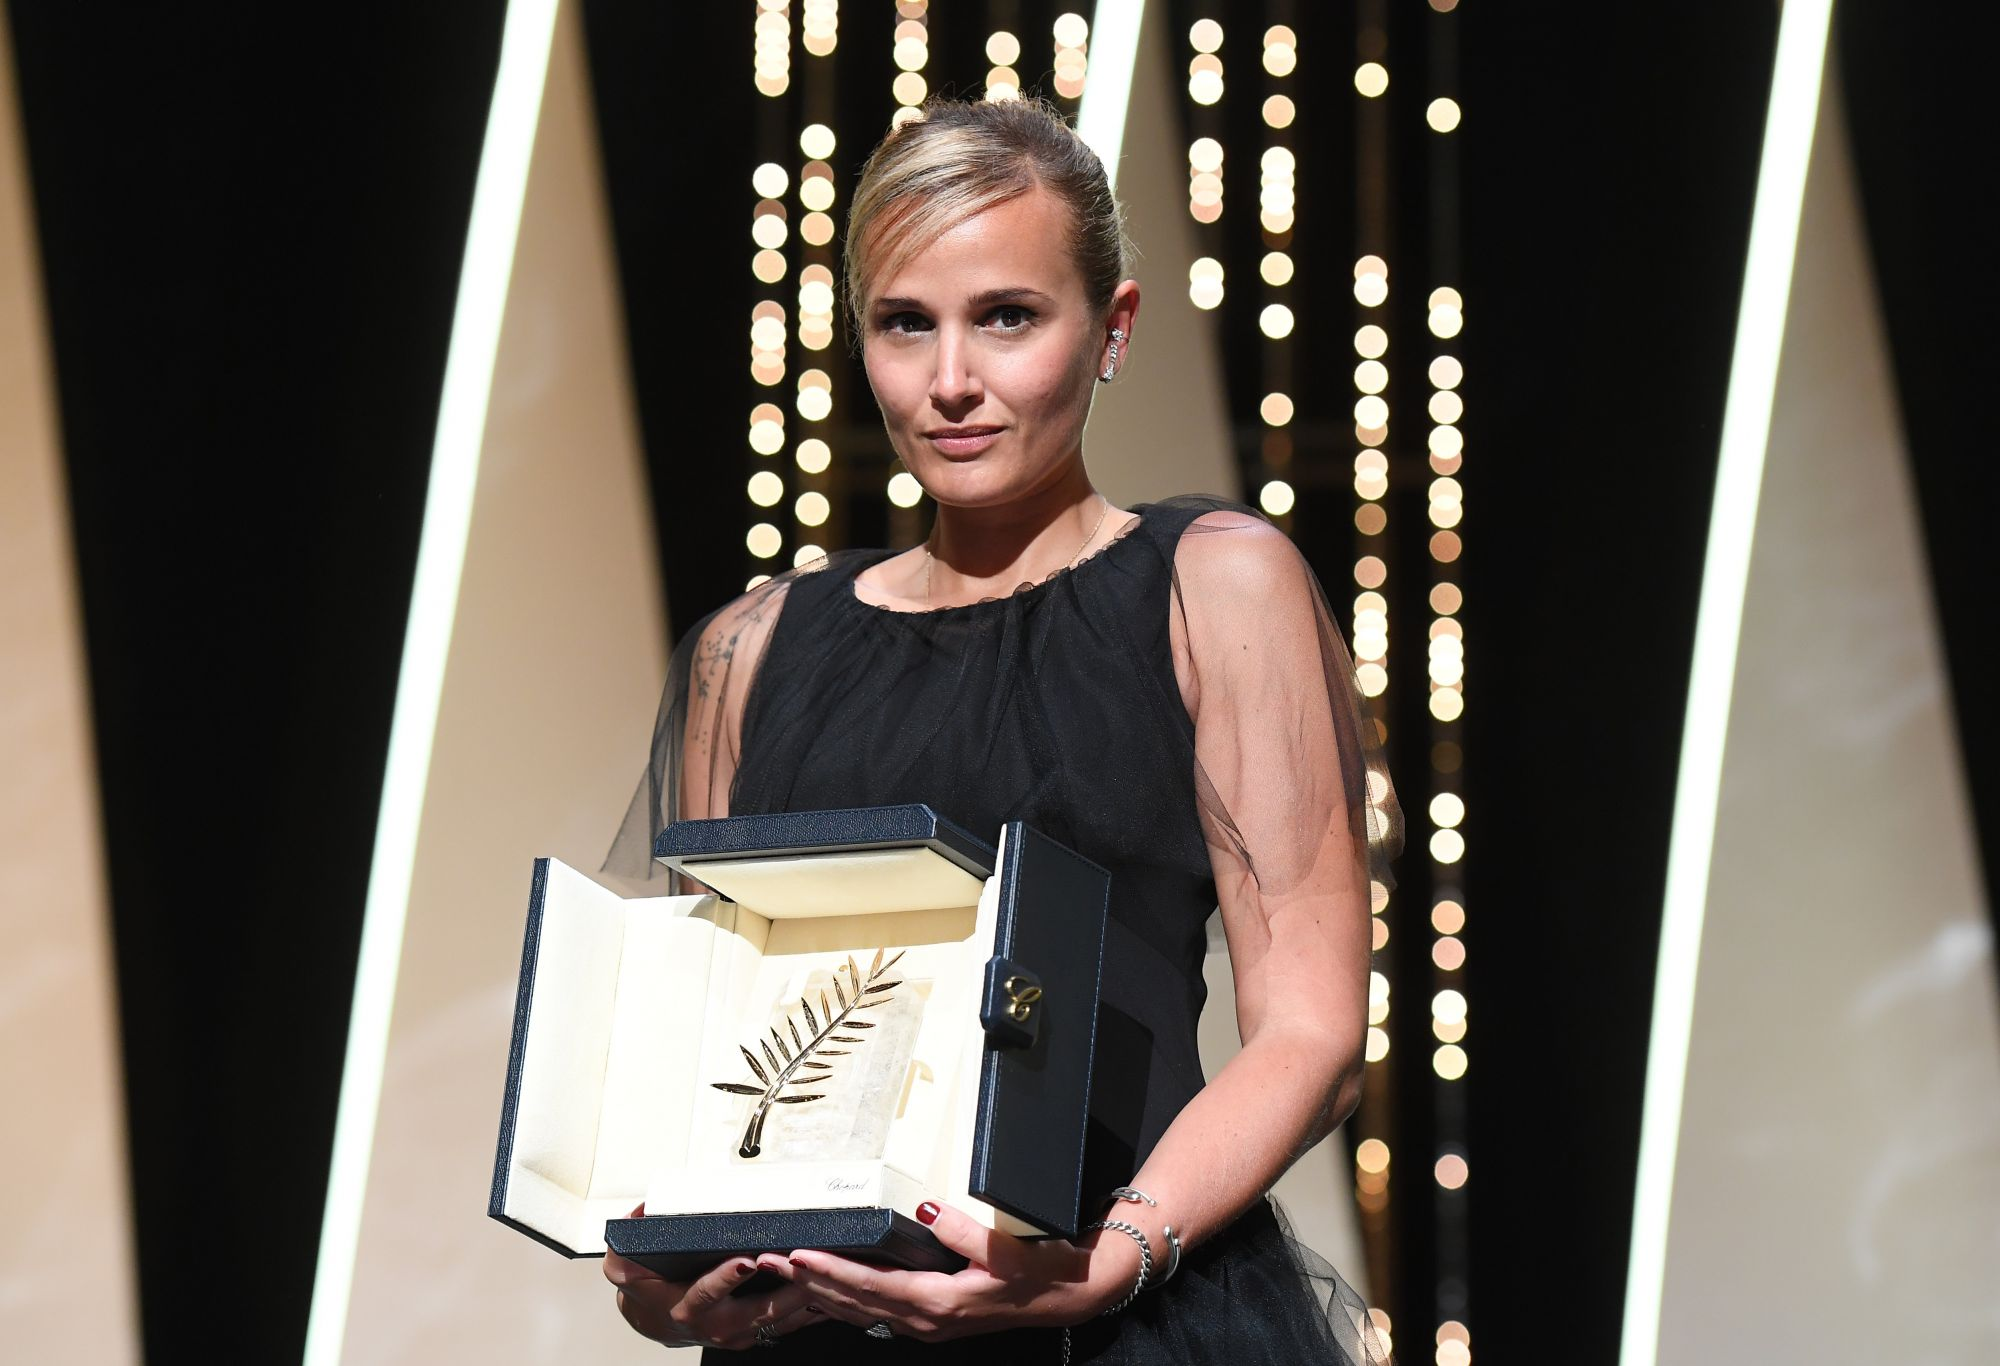 CANNES, FRANCE - JULY 17: Julia Ducournau poses with the Palme d'Or 'Best Movie Award' for 'Titane' during the closing ceremony of the 74th annual Cannes Film Festival on July 17, 2021 in Cannes, France. (Photo by Stephane Cardinale - Corbis/Corbis via Getty Images)